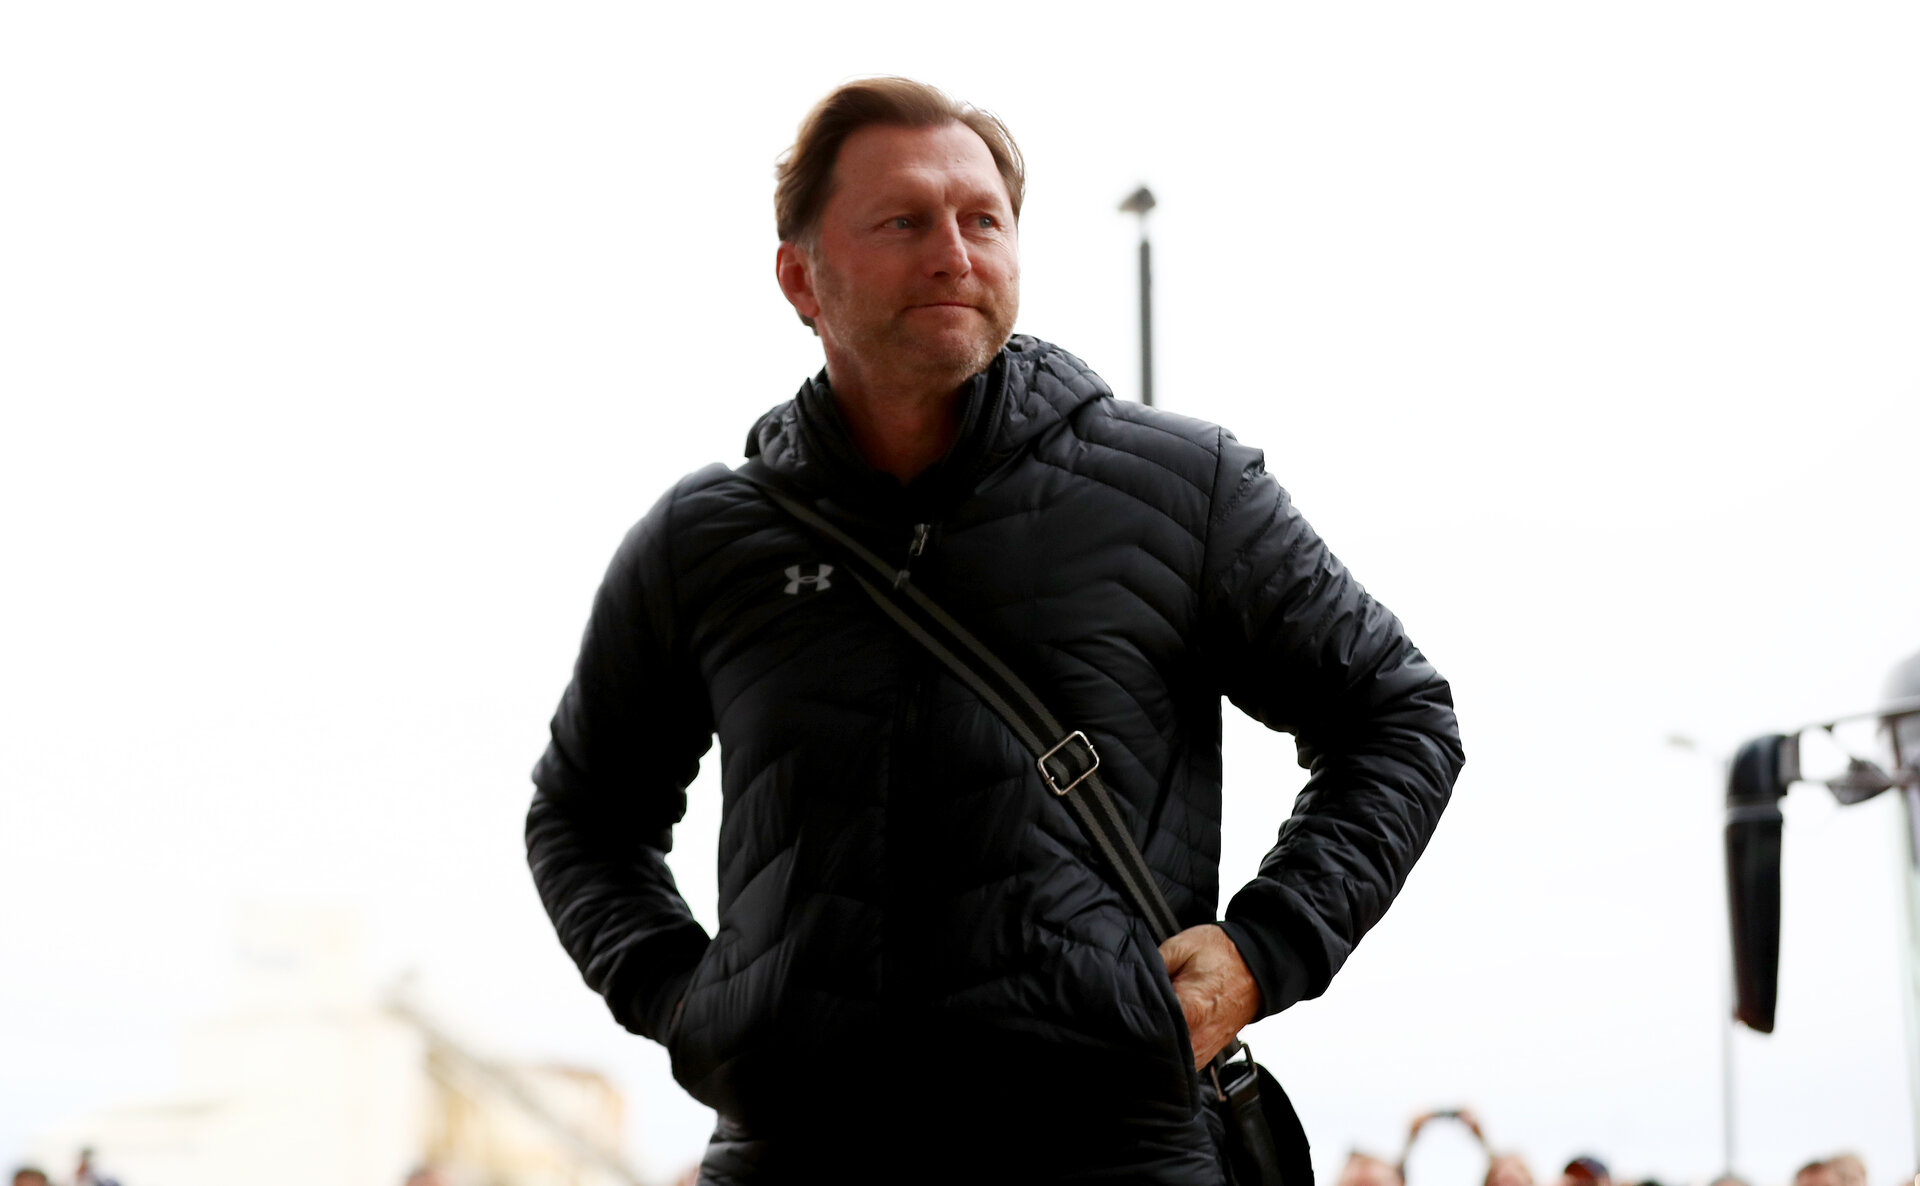 SOUTHAMPTON, ENGLAND - DECEMBER 30: Ralph Hasenhuttl of Southampton ahead of the Premier League match between Southampton FC and Manchester City at St Mary's Stadium on December 30, 2018 in Southampton, United Kingdom. (Photo by Matt Watson/Southampton FC via Getty Images)